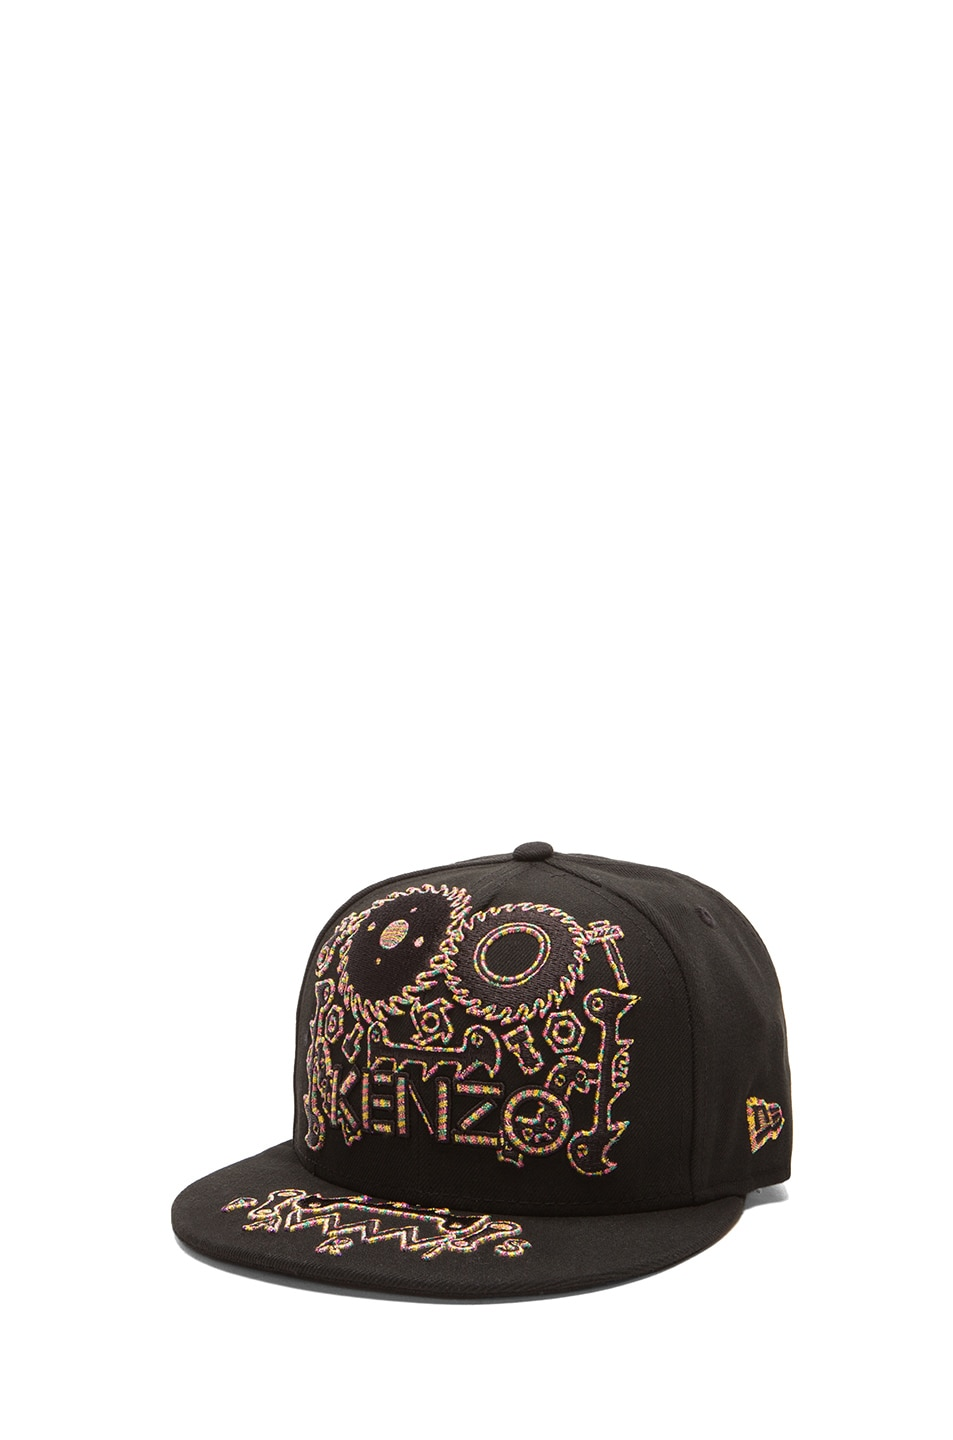 ac1b4f351c4 Image 2 of Kenzo x New Era Monster Embroidery Cap in Black